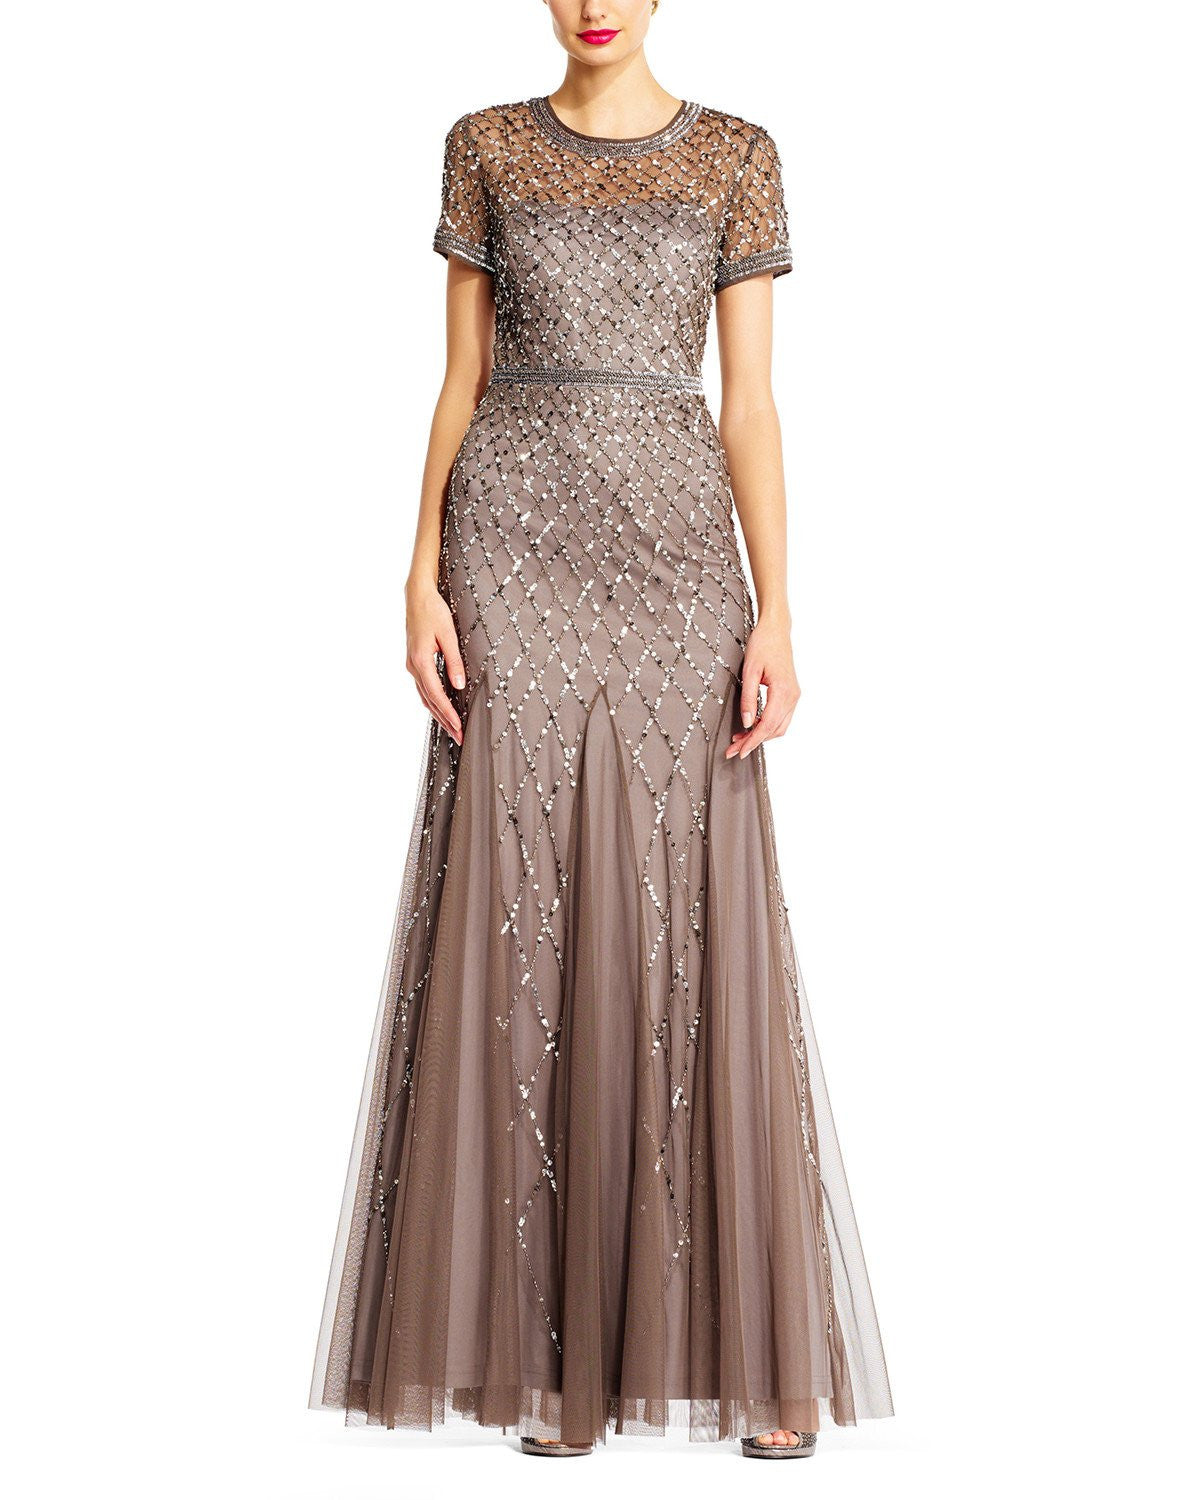 Adrianna Papell Cap Sleeve Beaded Gown in Lead - Sample